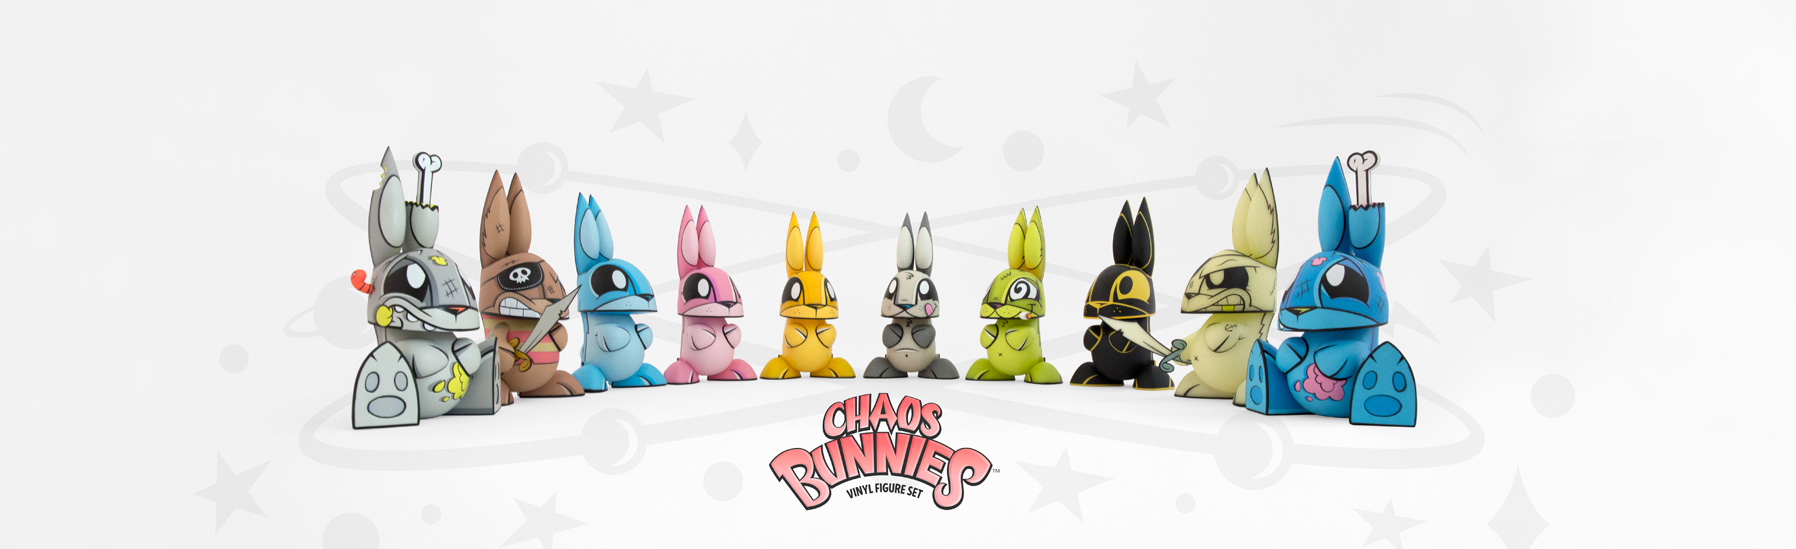 loading Chaos Bunnies vinyl figure set banner